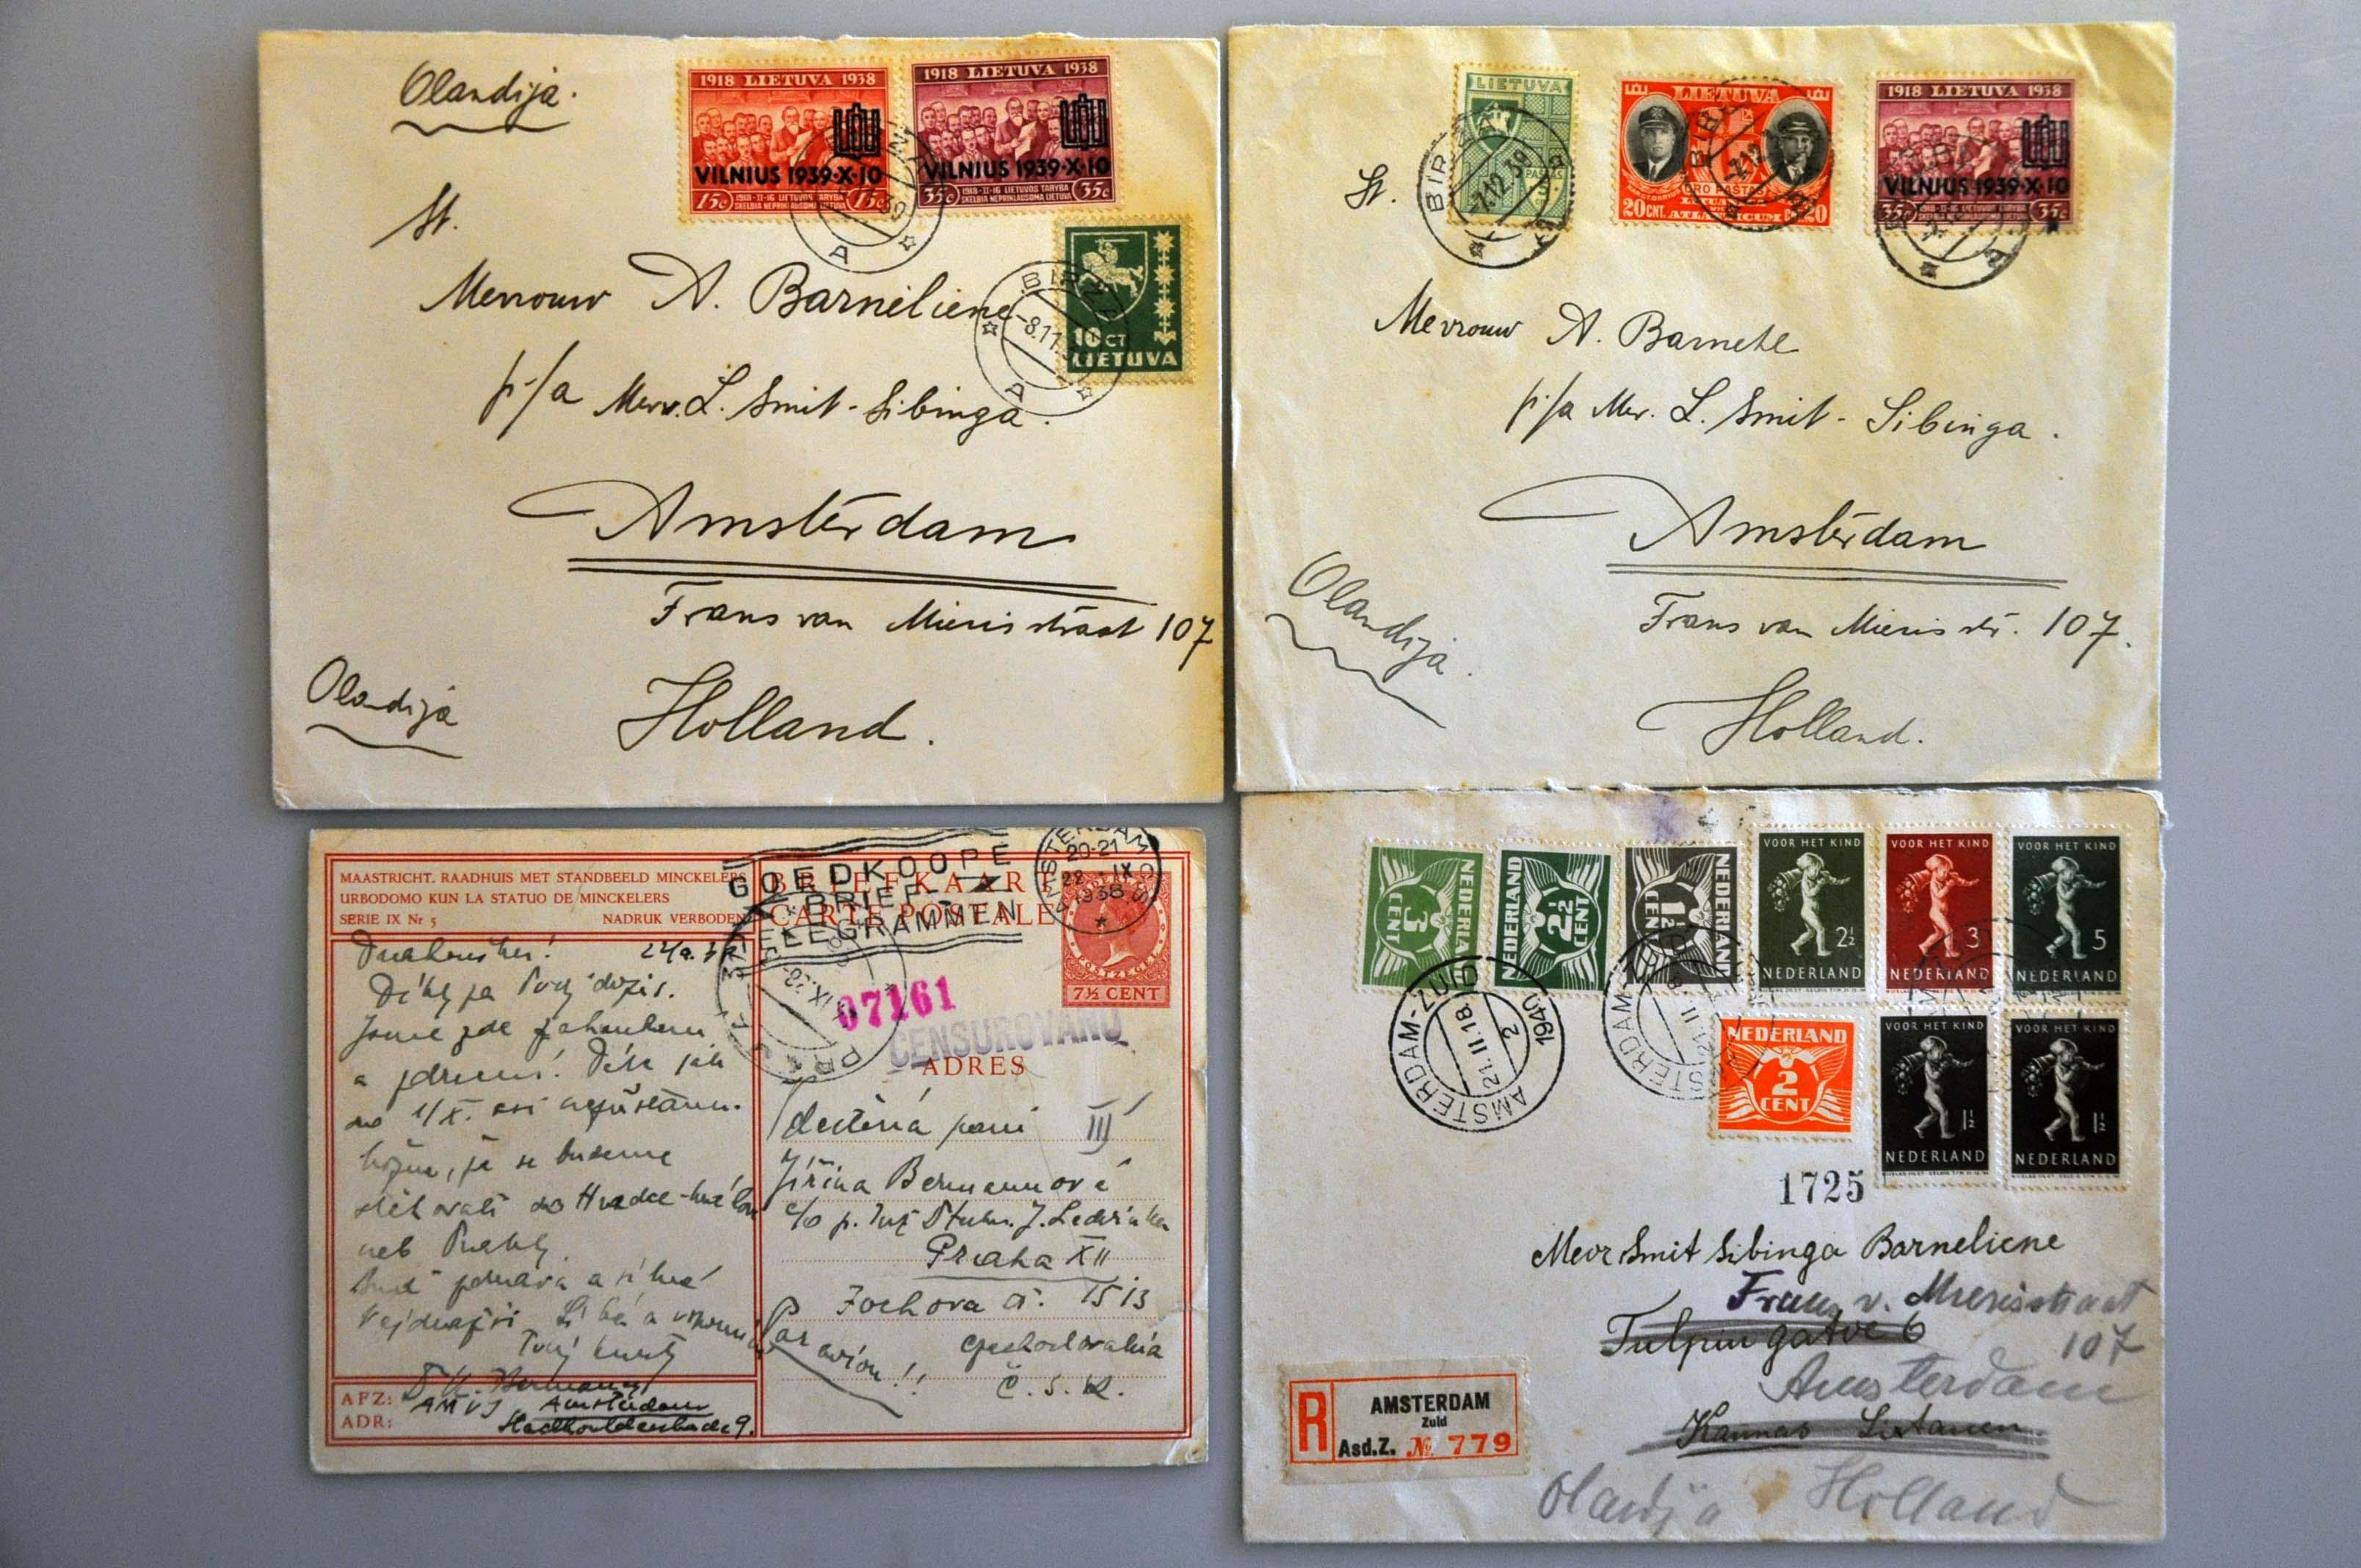 Lot 1016 - Topics and Miscellaneous world war II -  Corinphila veilingen Auction 235: Postal History WW2 - The Stefan Drukker Collection